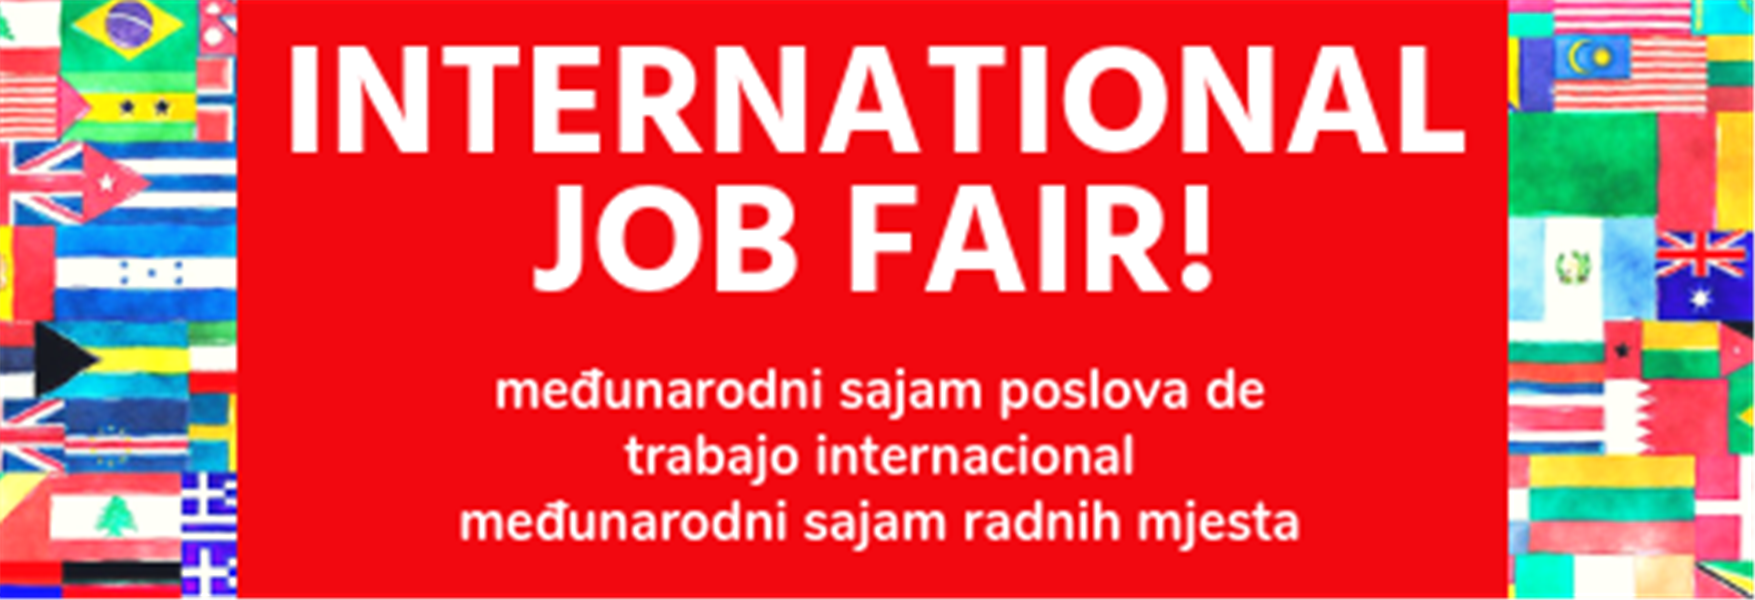 86ab63fd-c85c-451b-b357-701edf37637d_International job fair header HQ.png